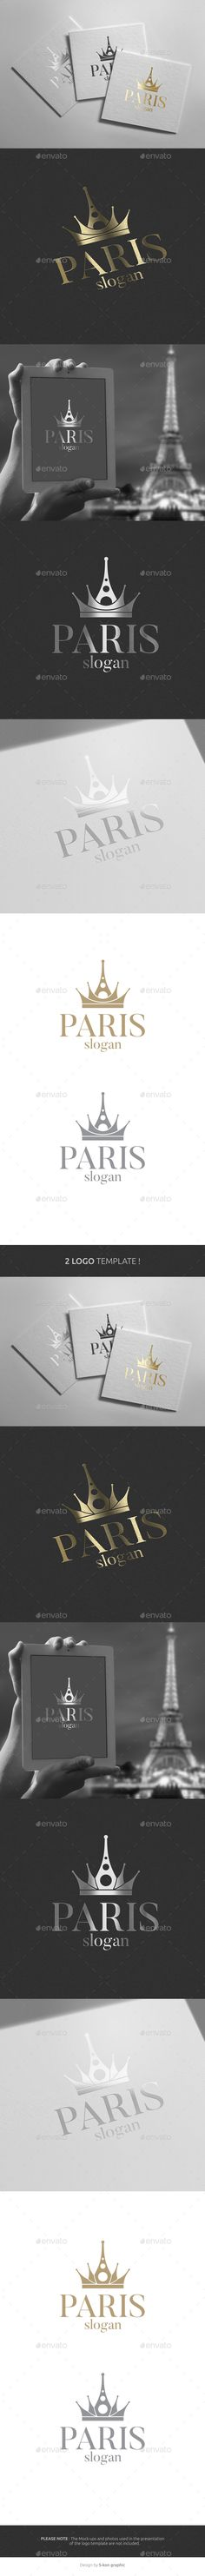 Crown Logo Template - Logo Design Template Vector EPS, Vector AI. Download here: http://graphicriver.net/item/crown-logo-template/16494210?ref=yinkira